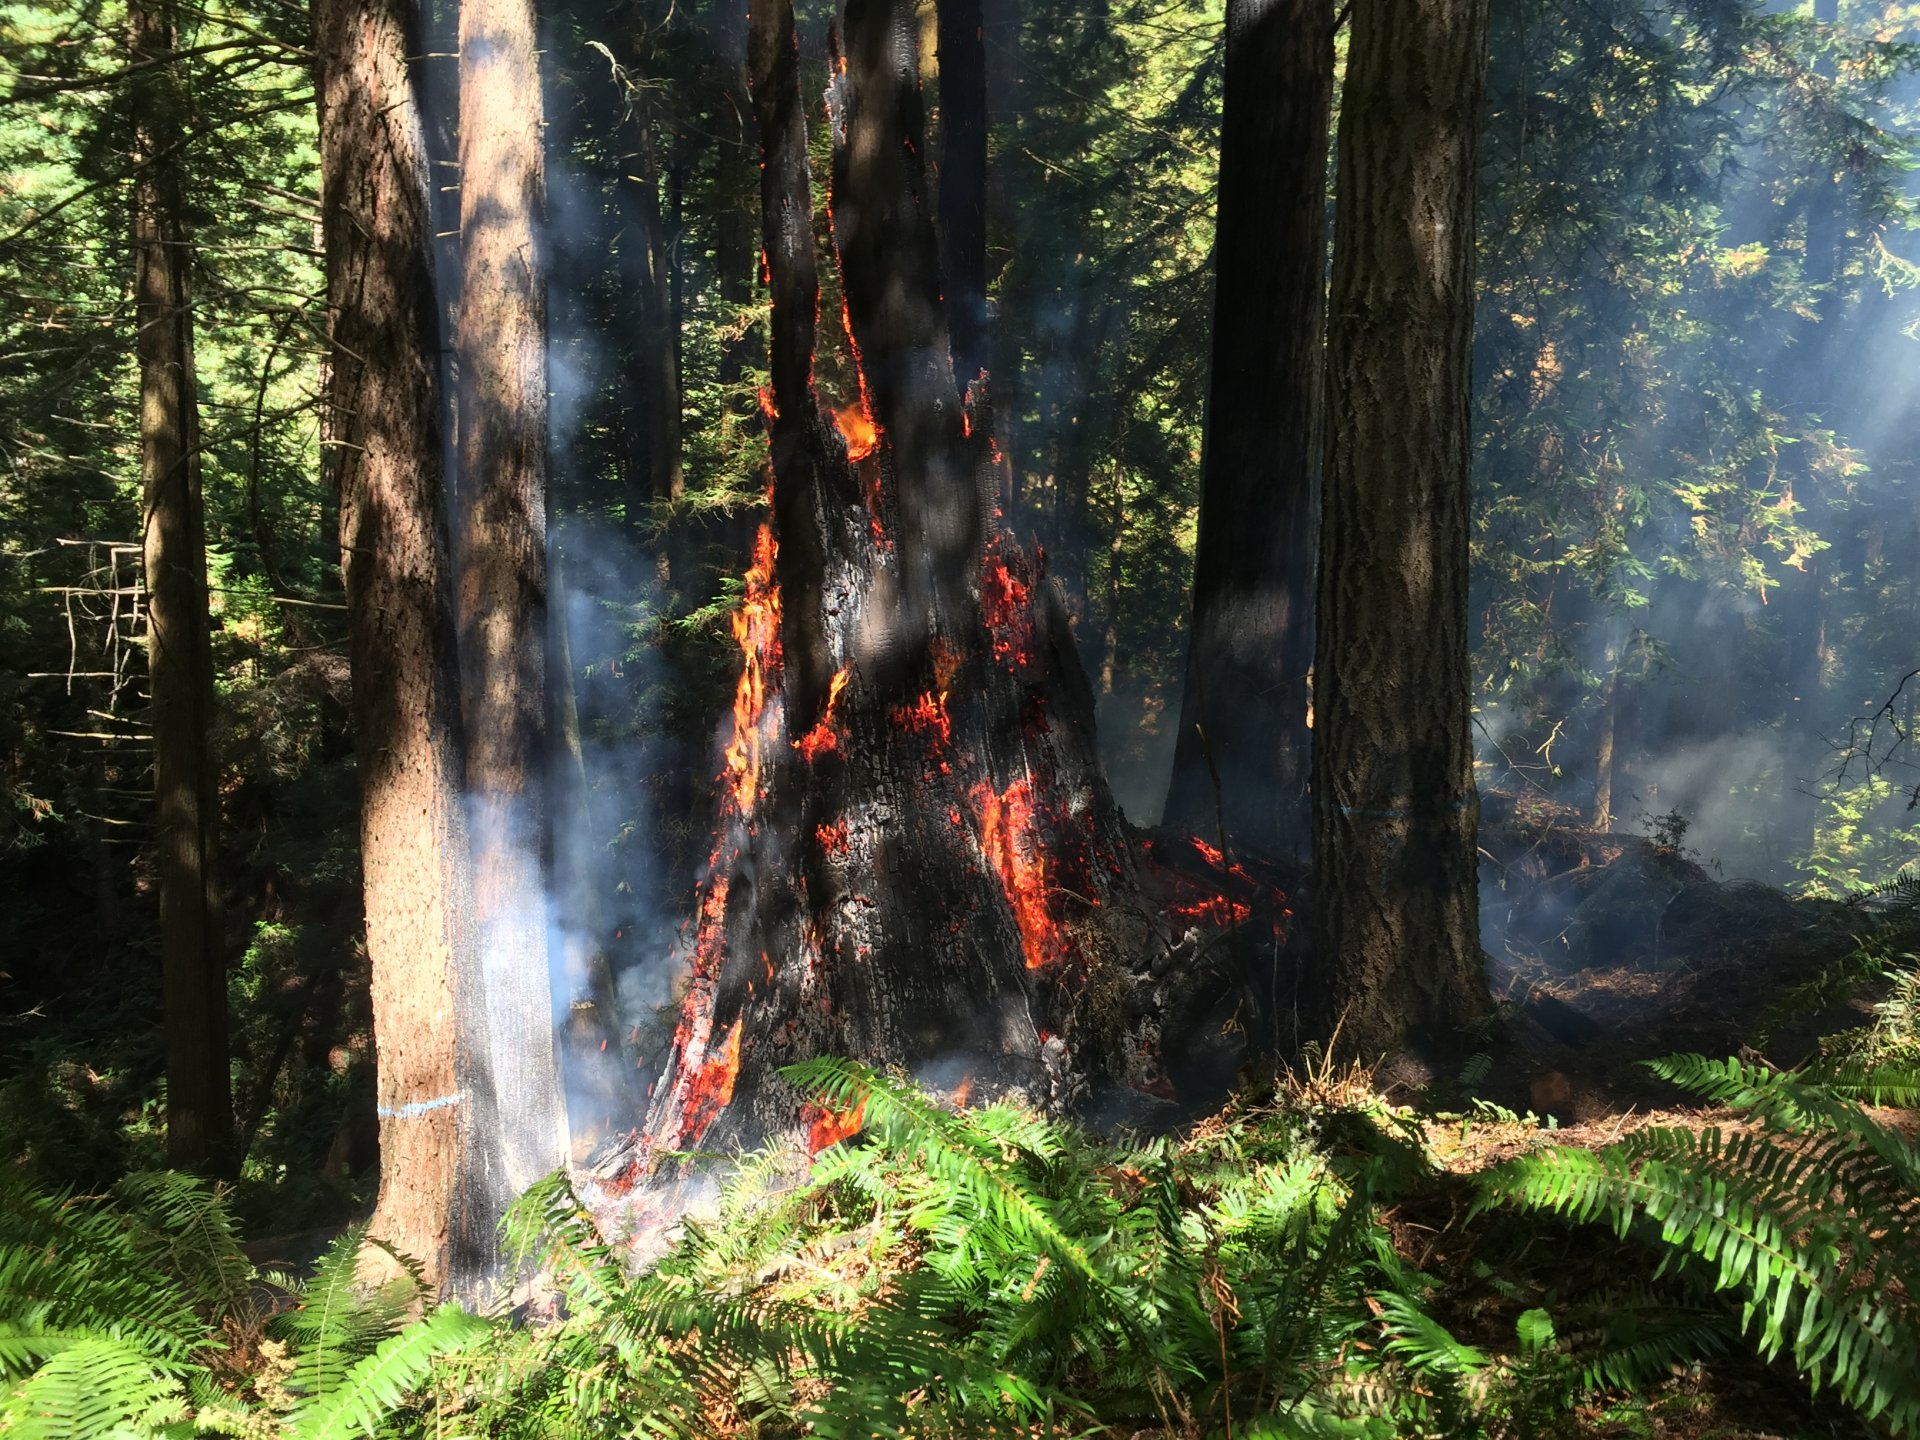 A burning redwood stump on private property neighboring the Arcata Community Forrest. | Photo by Iridian Casarez